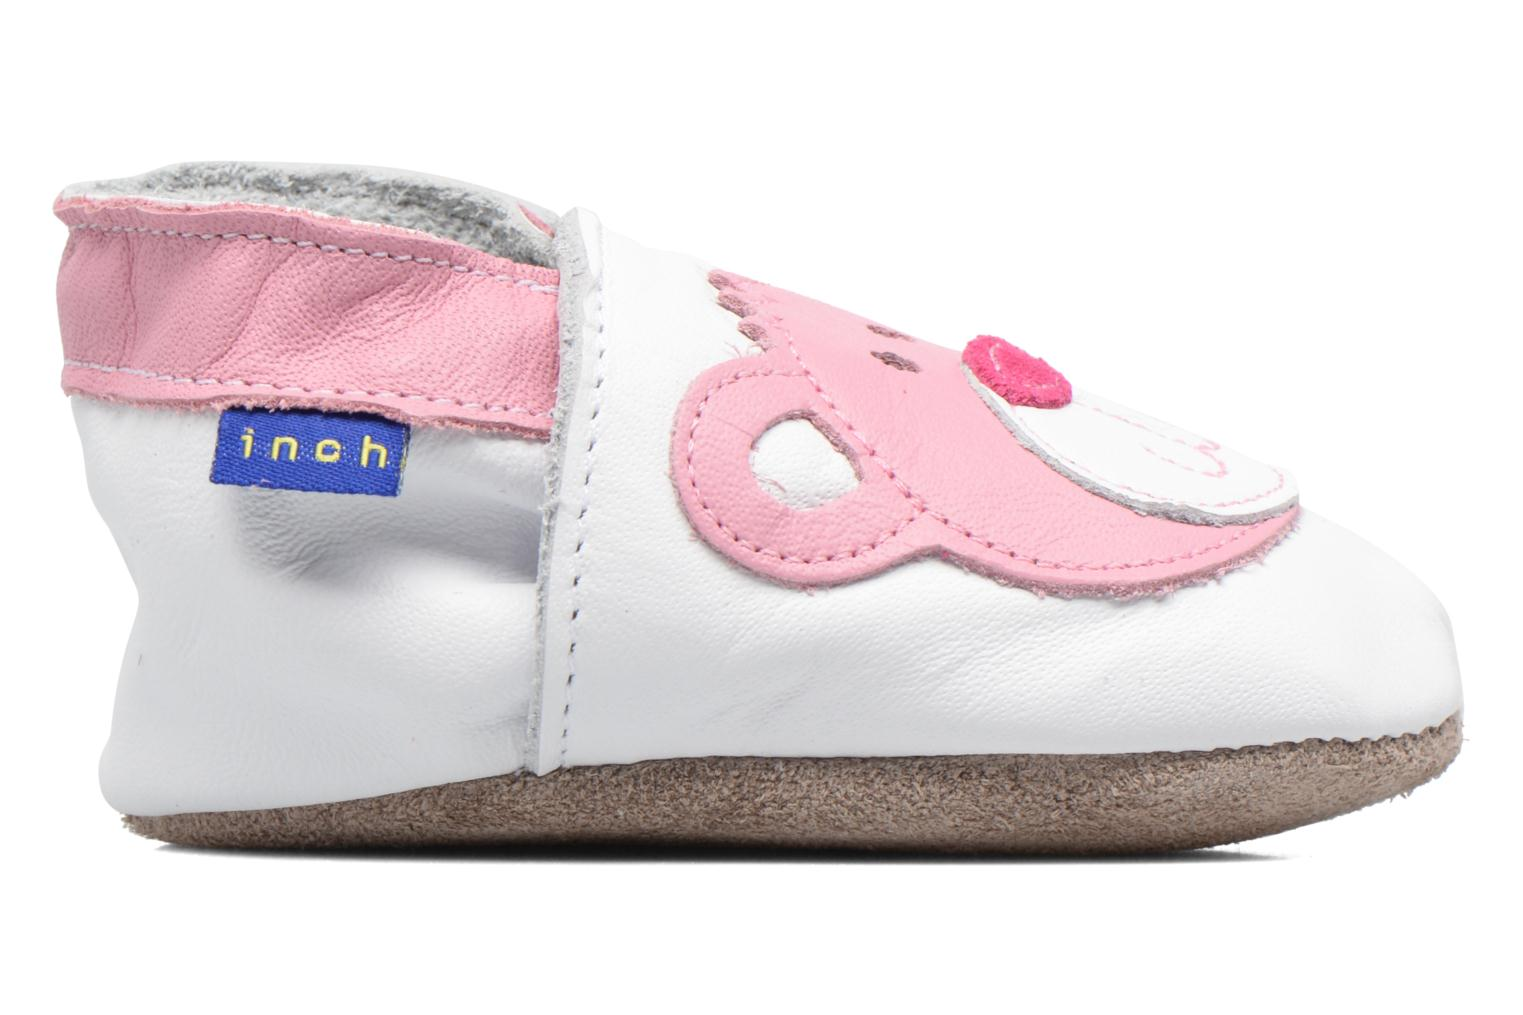 Pantoffels Inch Blue Teddy Pink Wit achterkant